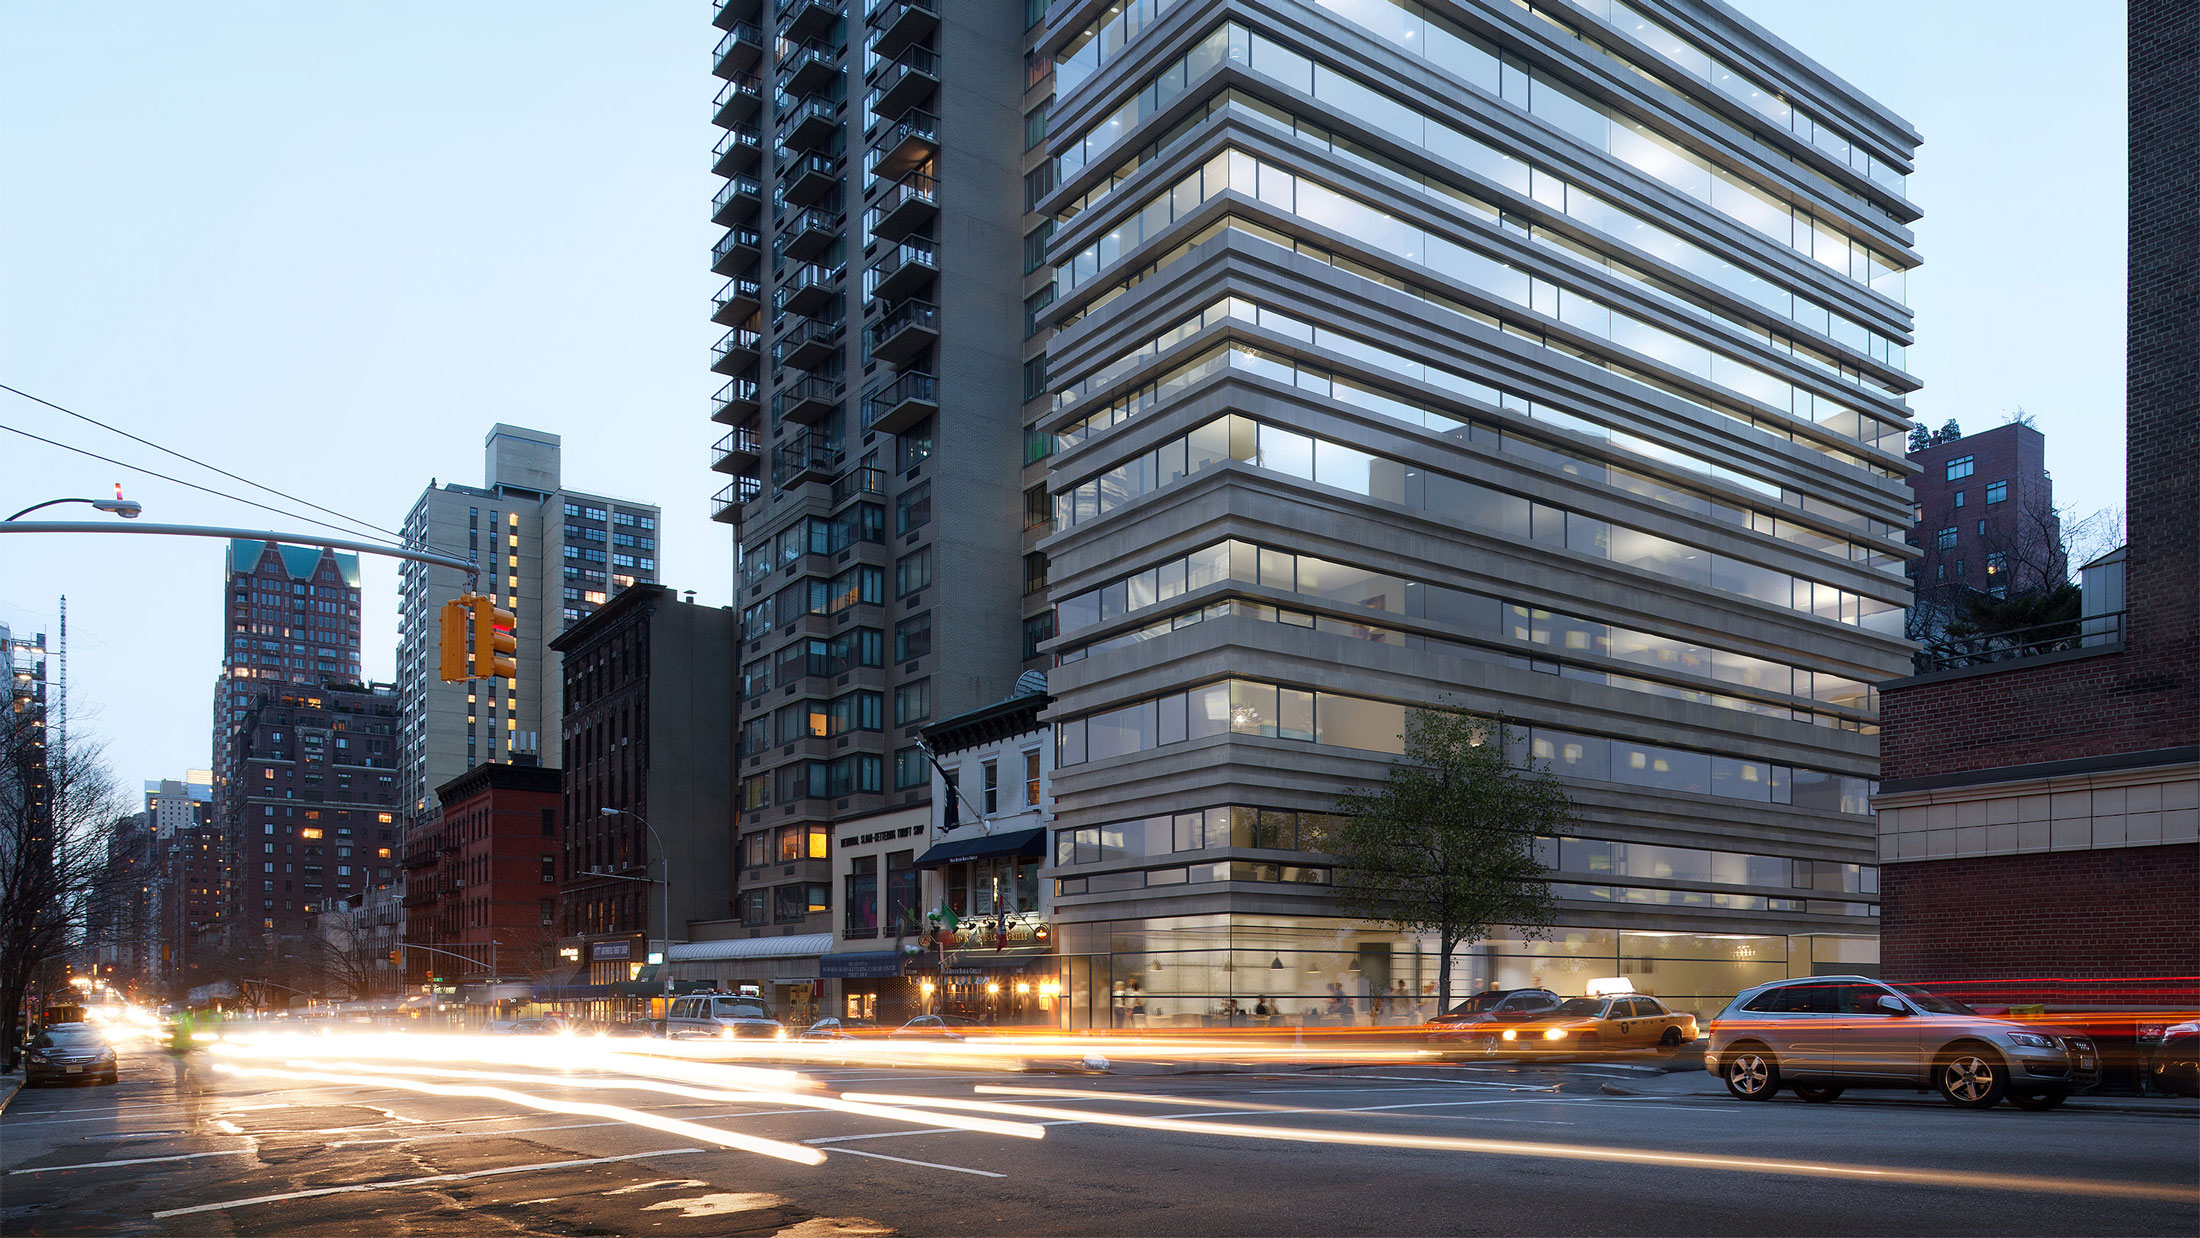 Architectural Rendering of the exterior of the 1444 Third Avenue project located on the Upper East Side, New York City